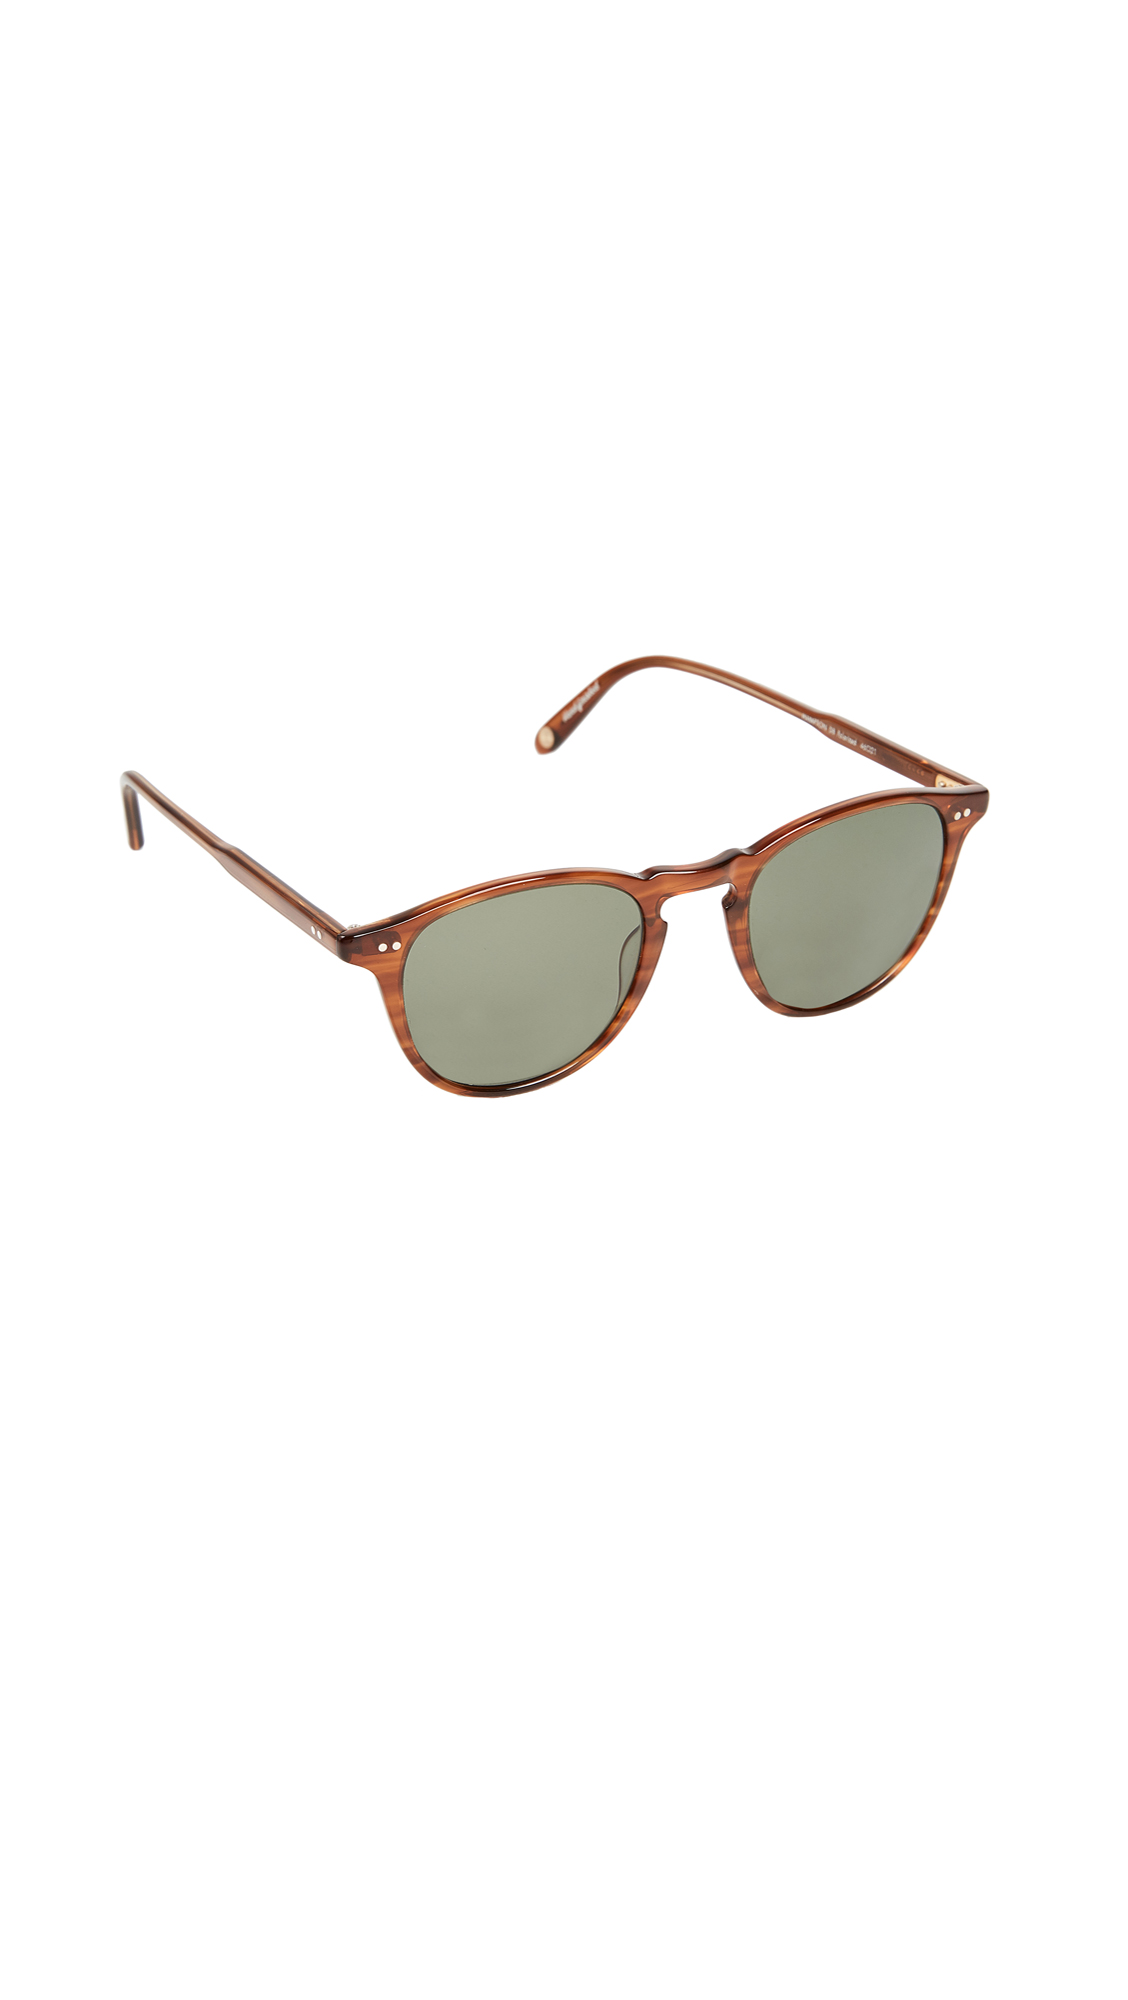 GARRETT LEIGHT Hampton Polar Sunglasses - Demi Blonde/G15 Polar